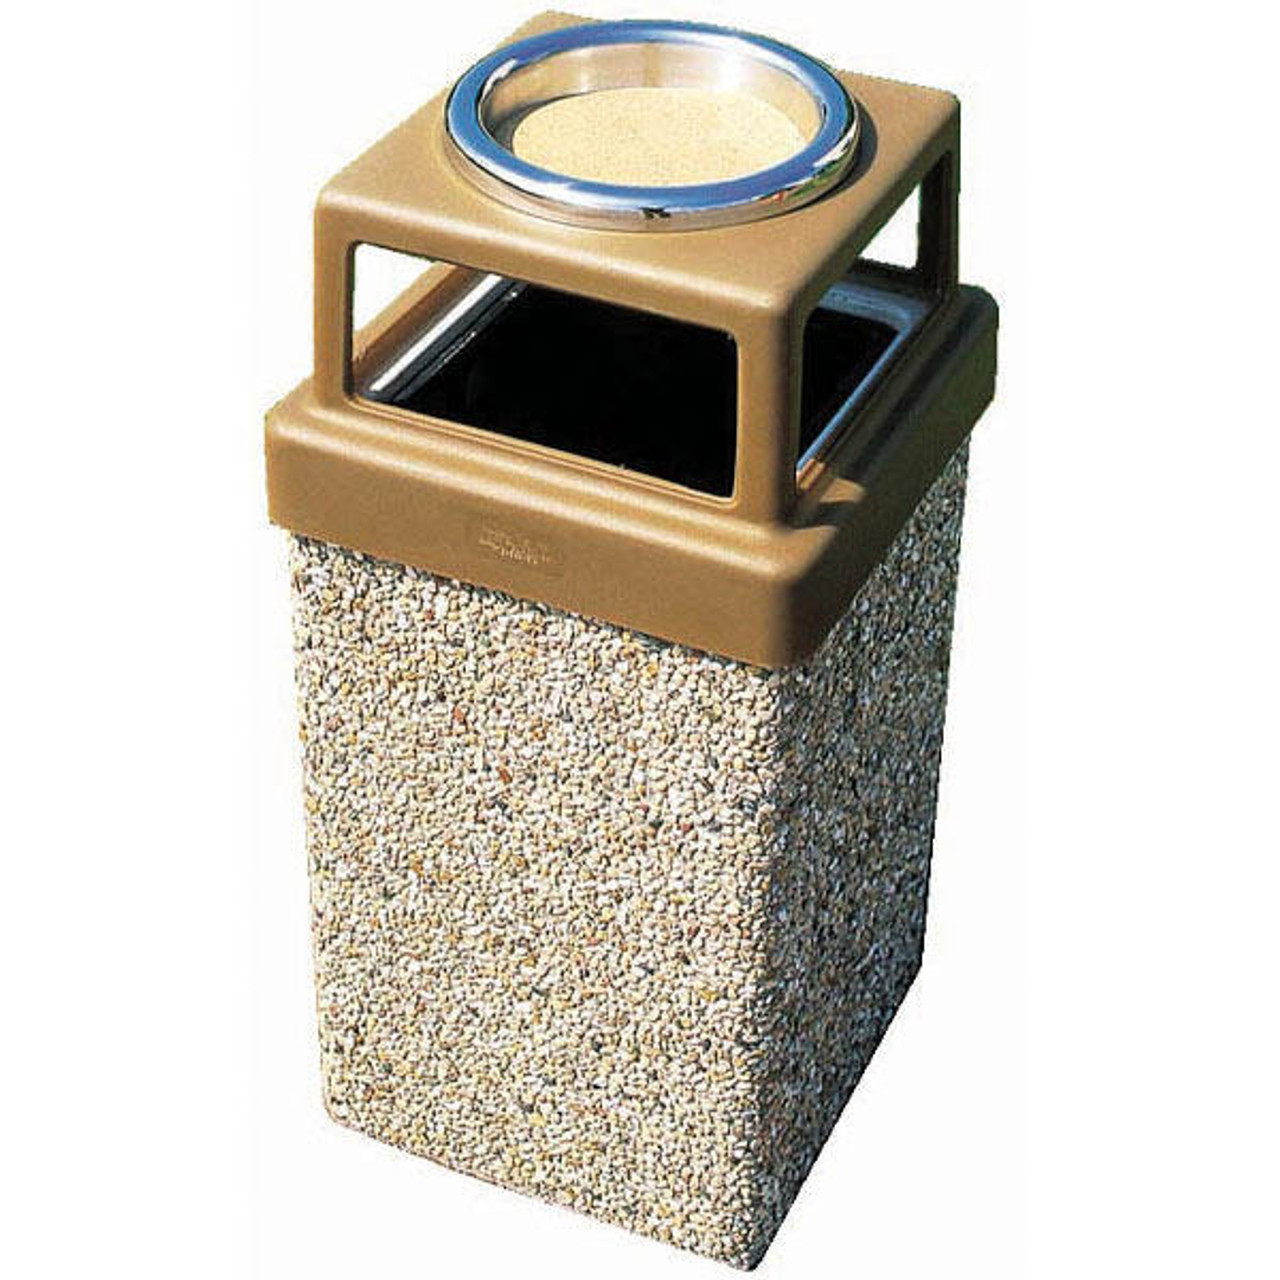 10 Gallon Concrete Outdoor Ash Trash Waste Container TF1006 Exposed Aggregate